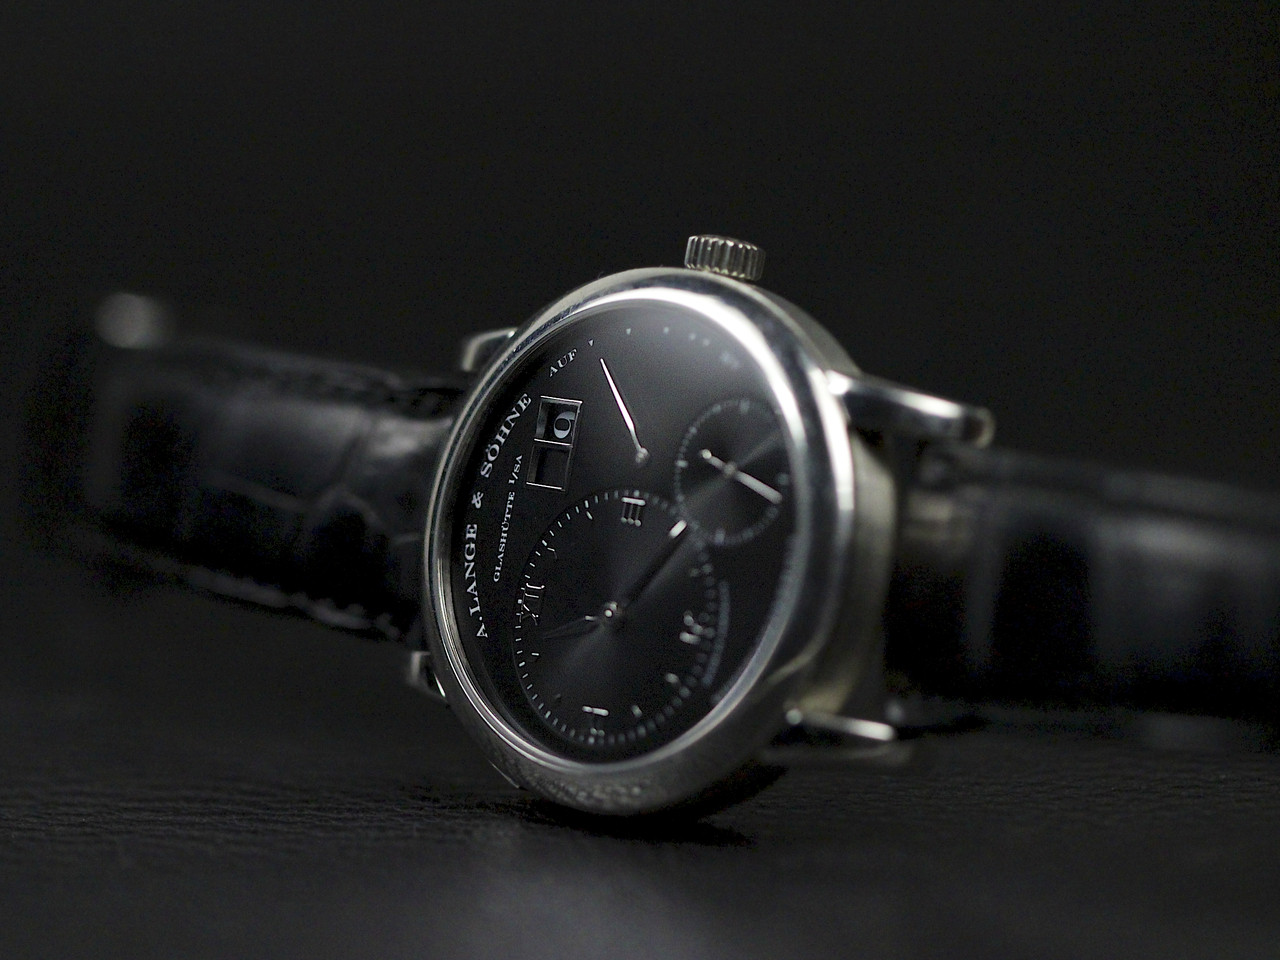 A Lange & Sohne Watch - Lange 1 Black Darth Dial 101.035 pre-owned for sale Legend of Time - Chicago Watch Center